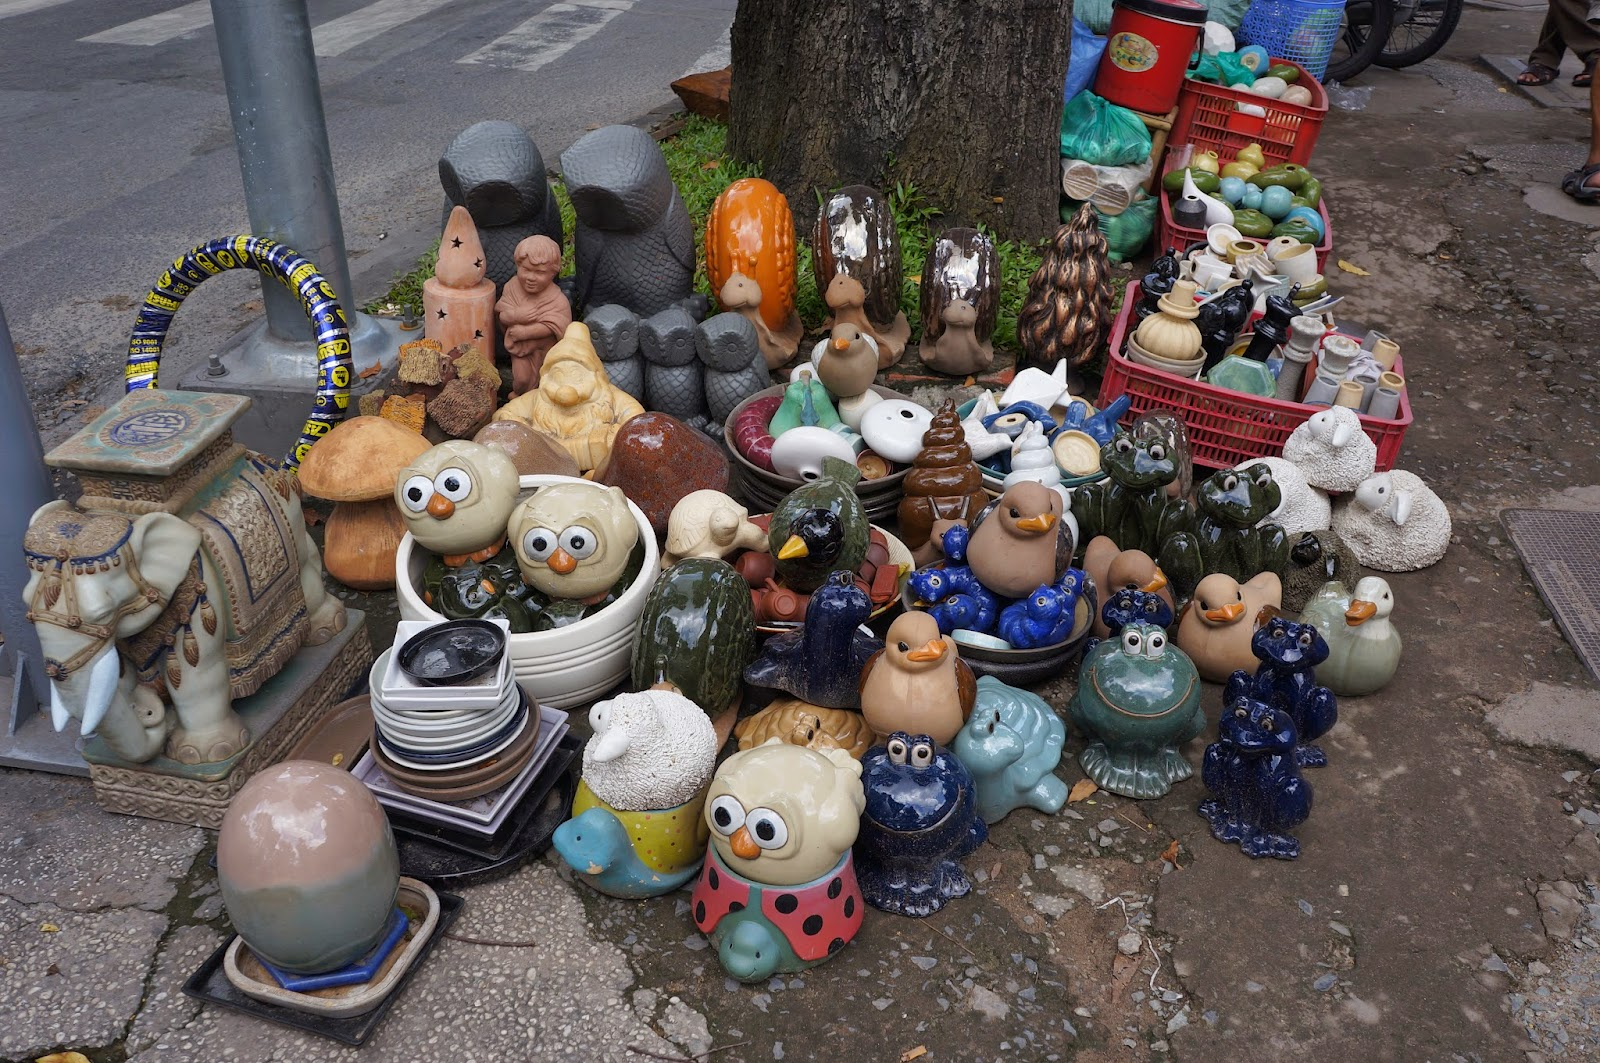 Pottery being sold right off the street in Ho Chi Minh City